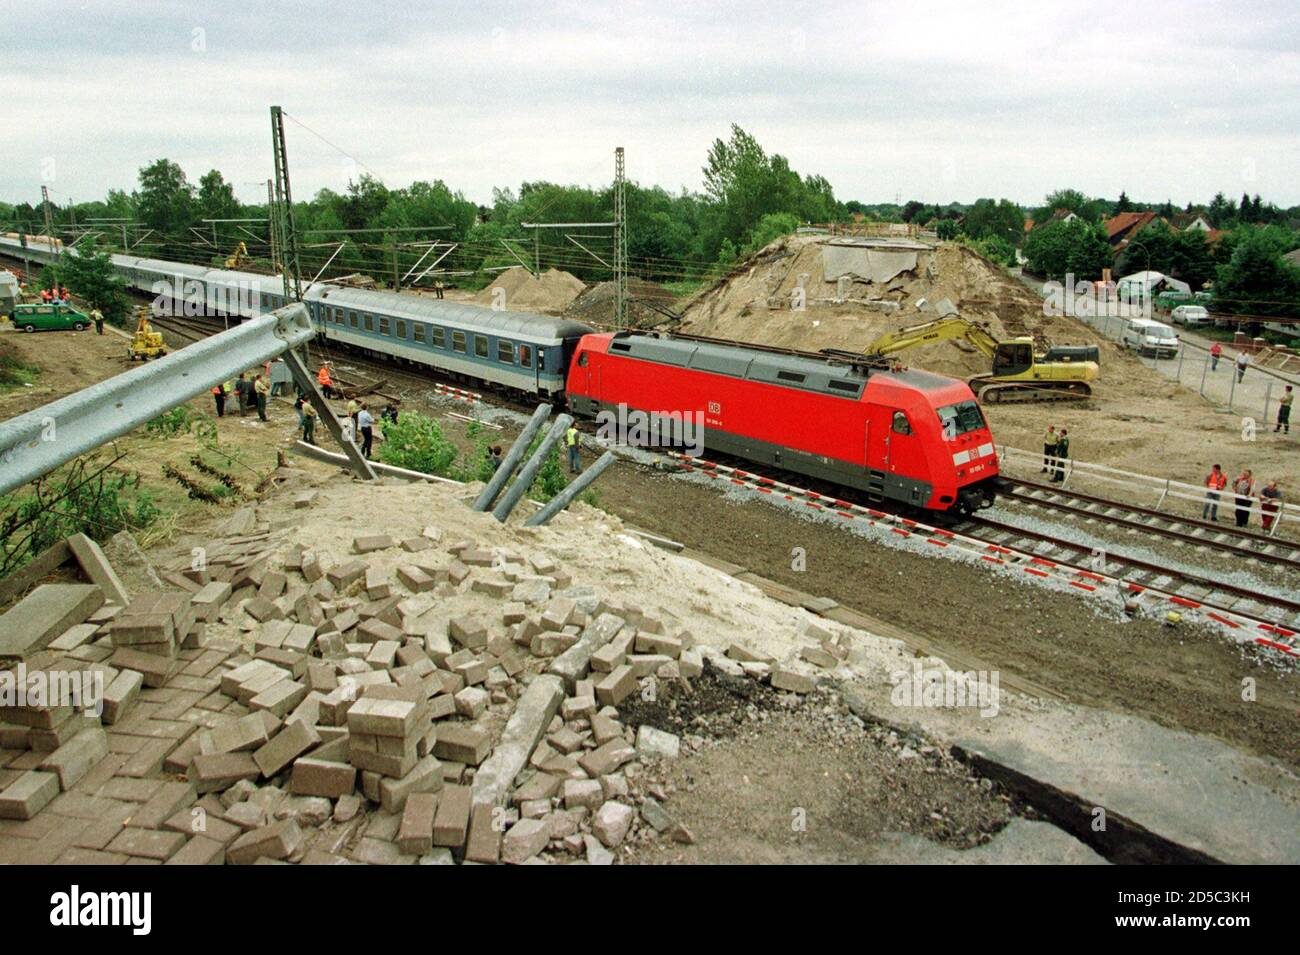 Rail traffic resumes with the first commuter train slowly passing by the crash site in Eschede June 9, where a German InterCity Express high-speed train, travelling at 200 kmh (125 mph), derailed and slammed into a road bridge June 3, leaving some 100 people dead and nearly 50 seriously injured. German railway Deutsche Bahn AG said the cause may have partly been due to a damaged wheel and withdrew sixty of the first generation ICE trains from service for special safety checks including an ultrasound test of the wheels.  CHA/EB Stock Photo